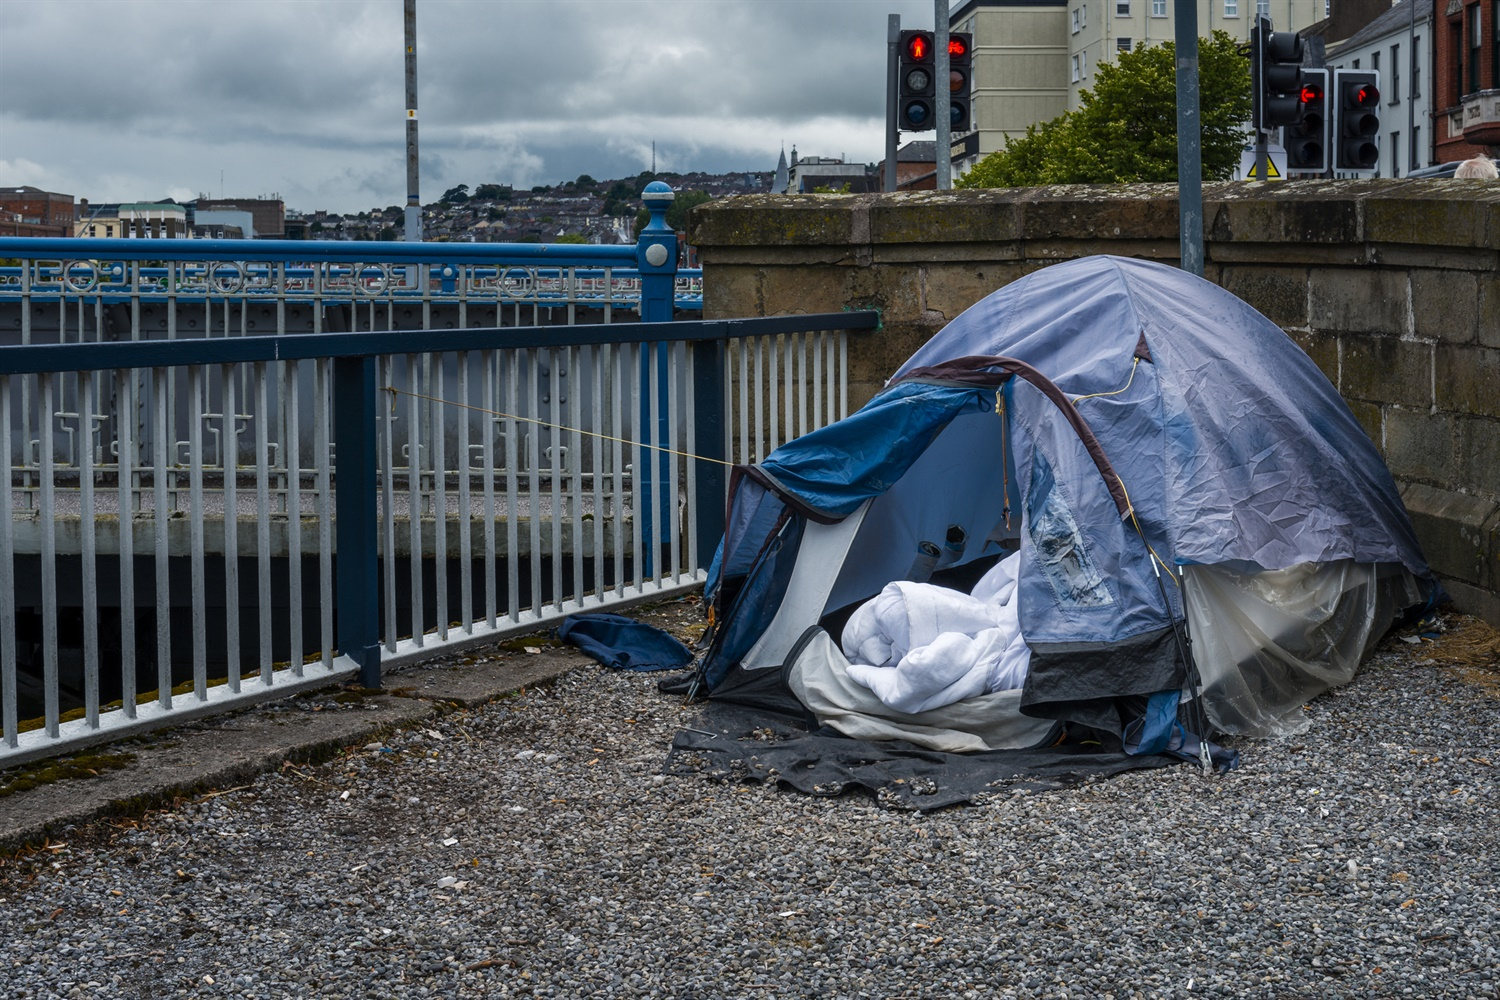 Welsh government grants council £300,000 to reduce homelessness